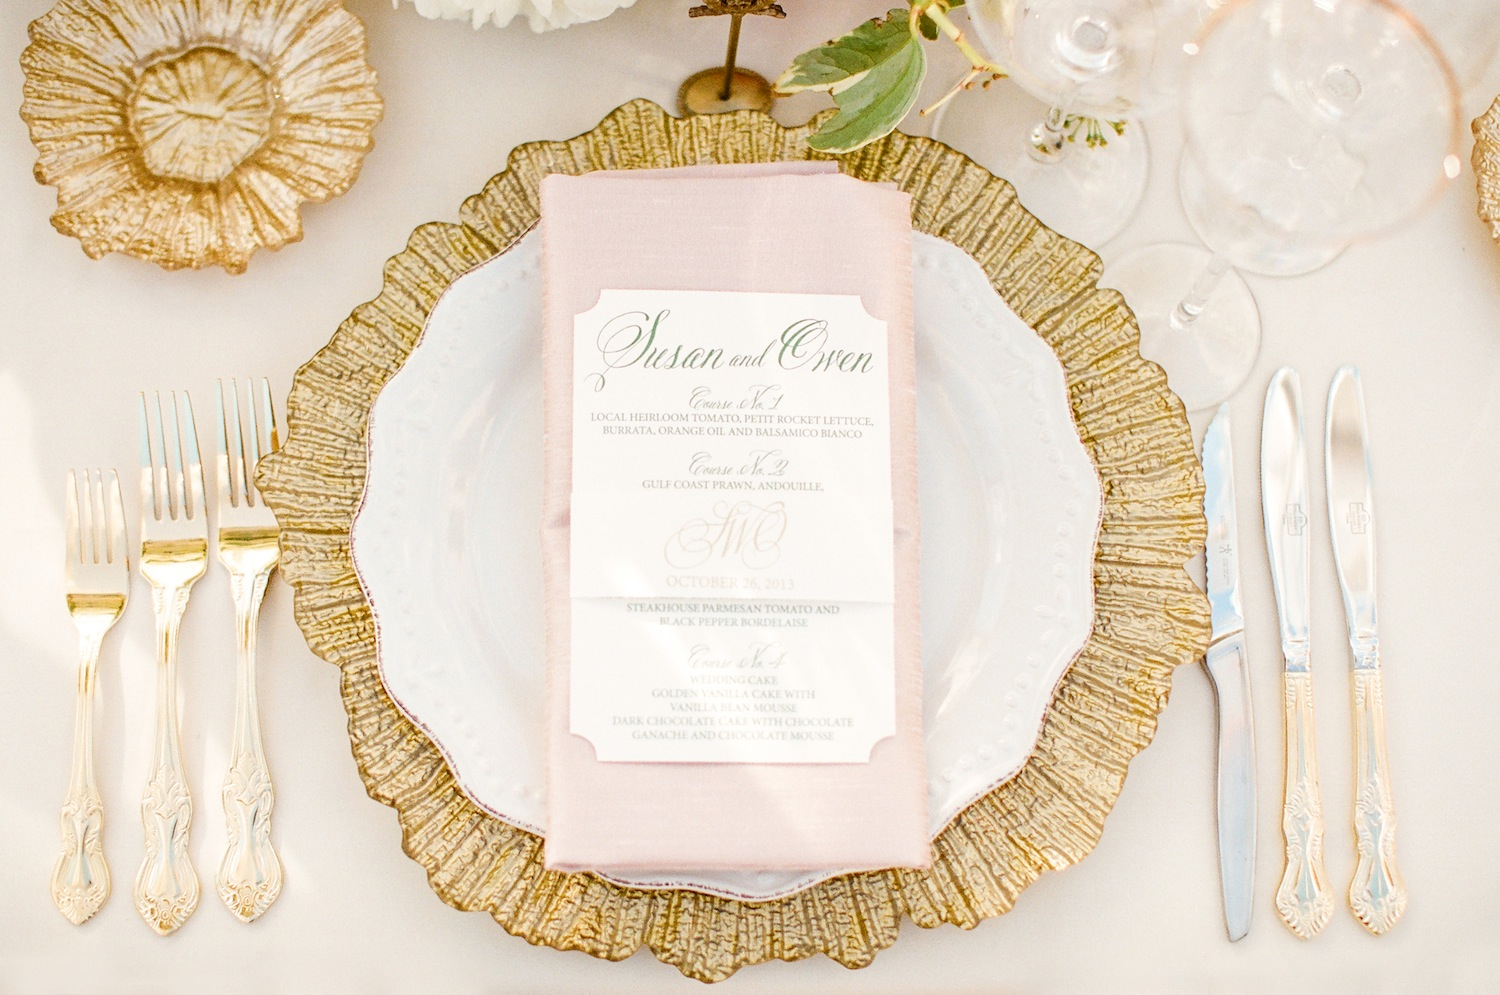 Gold texture charger with gold flatware at wedding